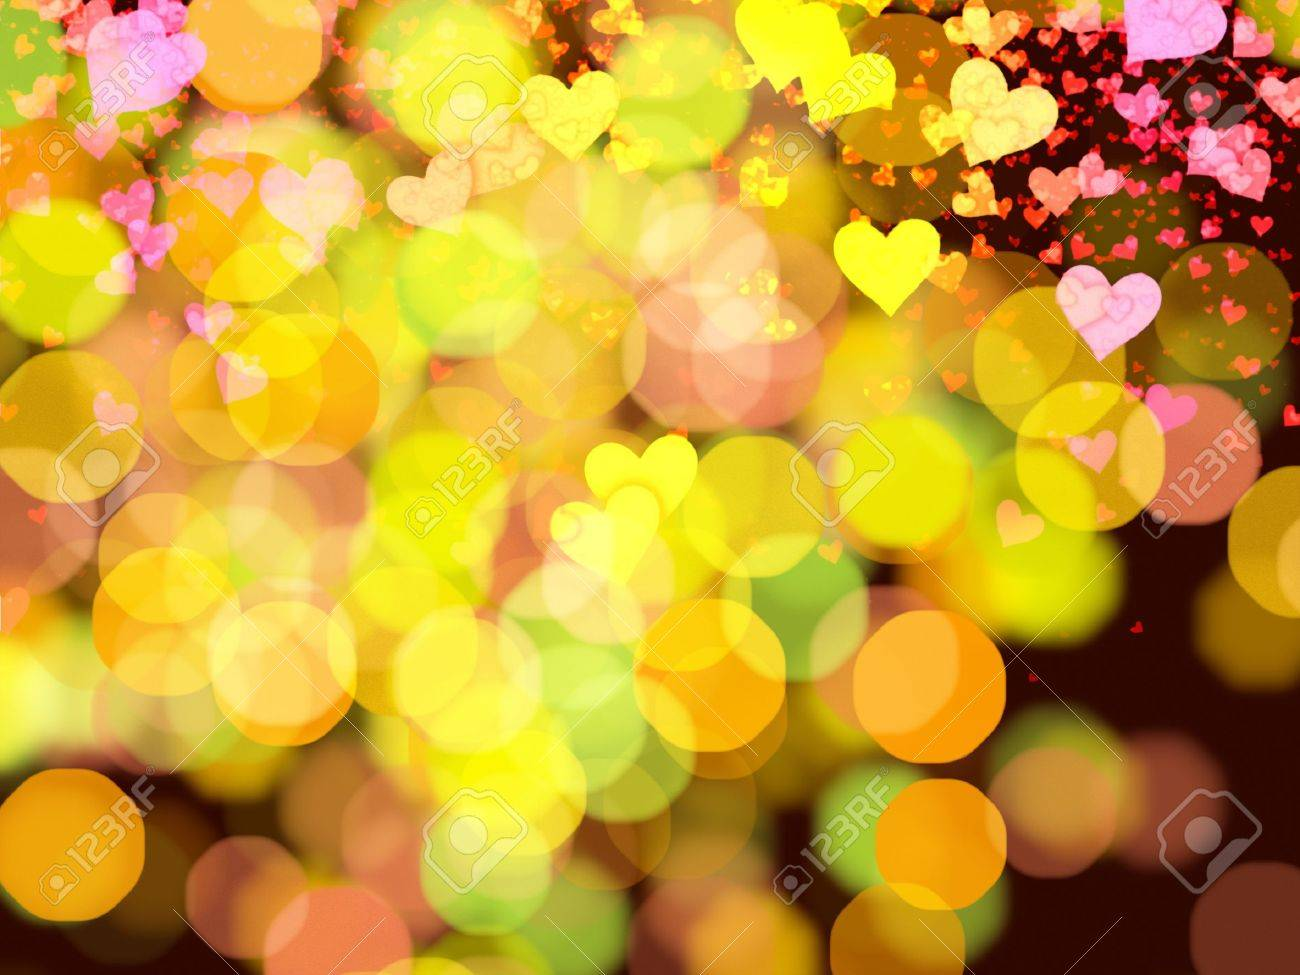 Abstract Background With Hearts and Lights Illustration Stock Illustration - 13579440